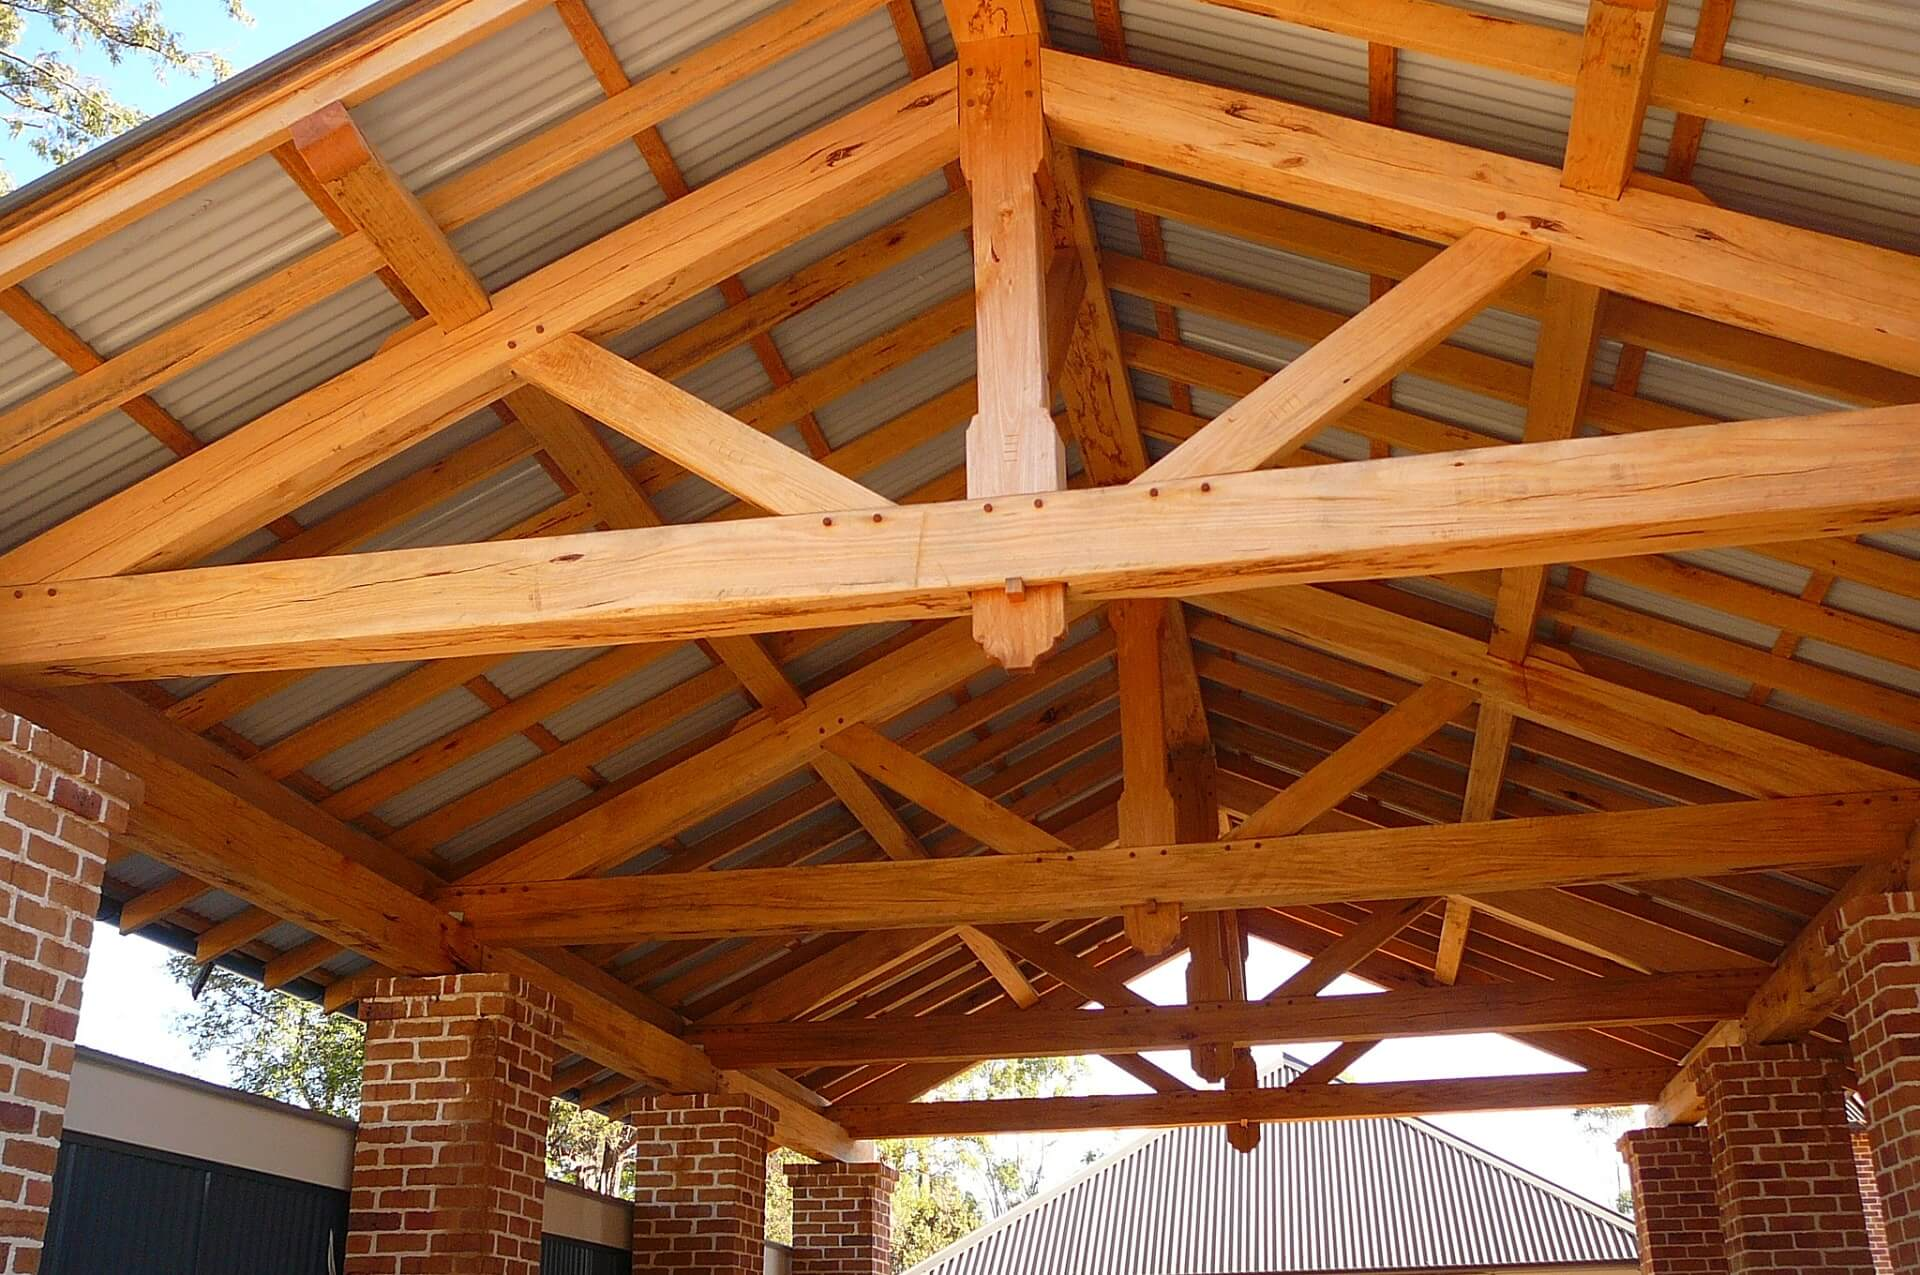 Photo of the completed outdoor pavillion. Featuring traditonally built timber trusses, brick pillars and a corrugated roof